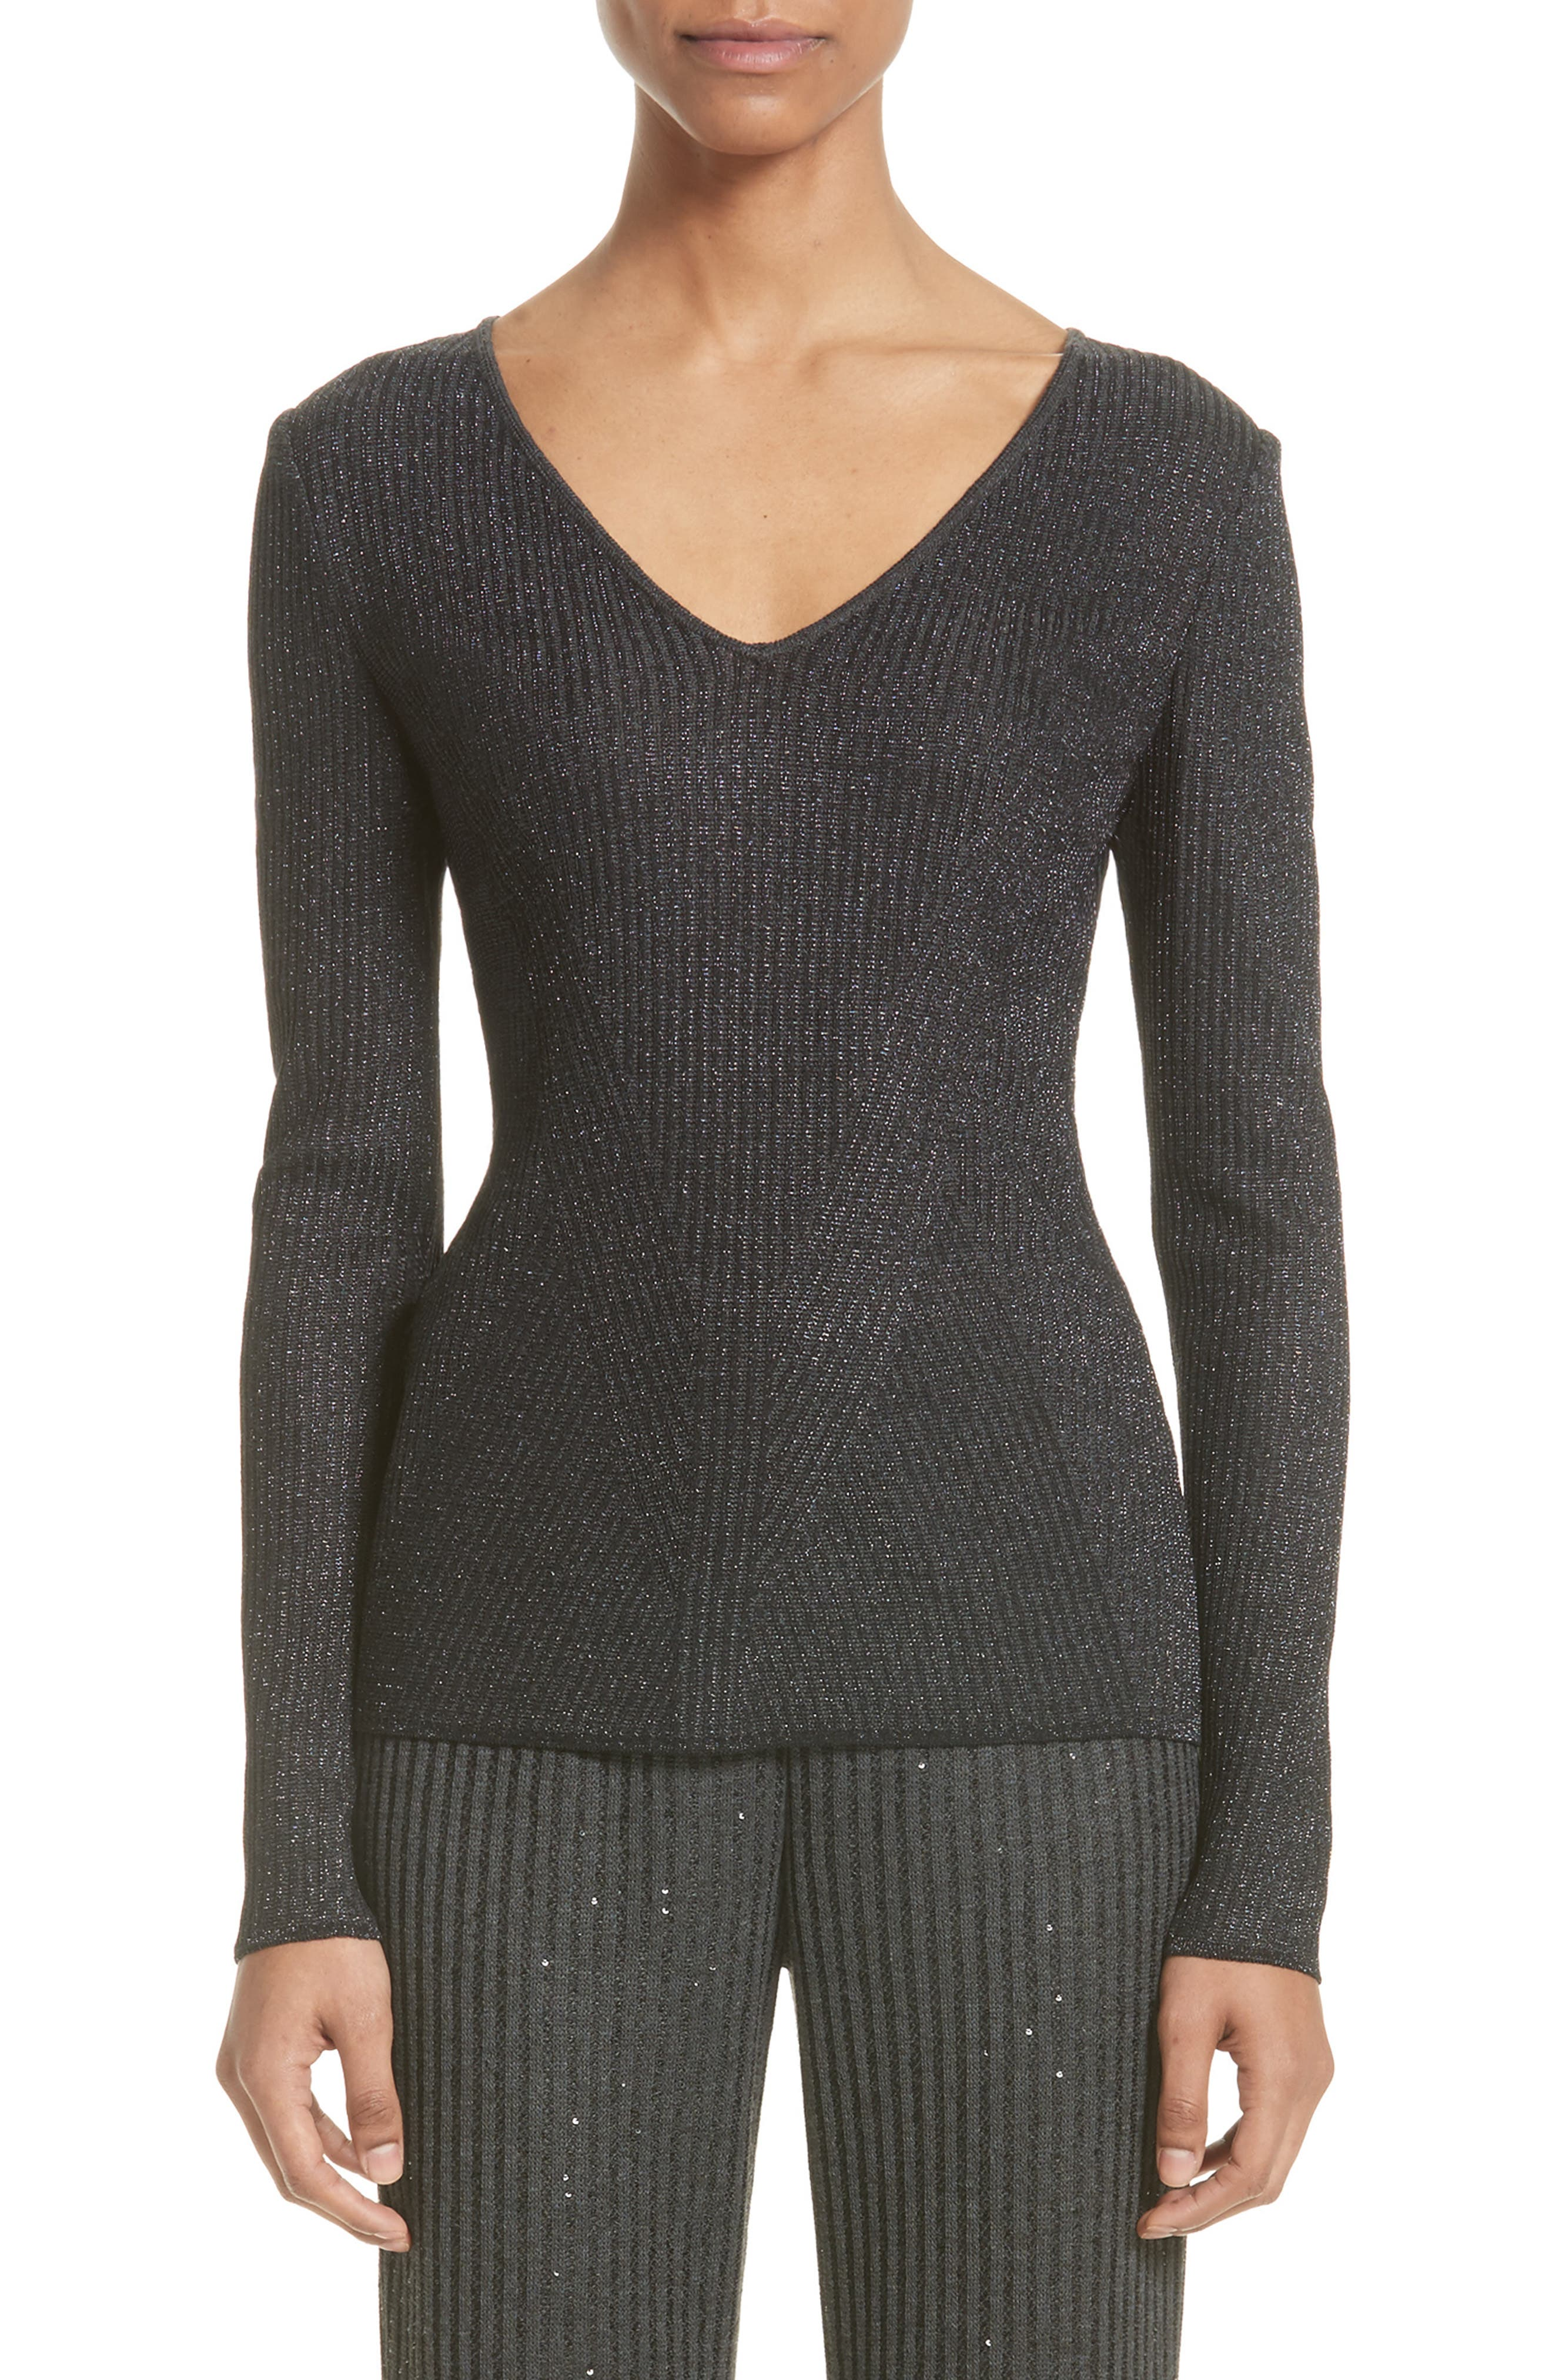 Engineered Rib Sparkle Knit Sweater,                             Main thumbnail 1, color,                             020